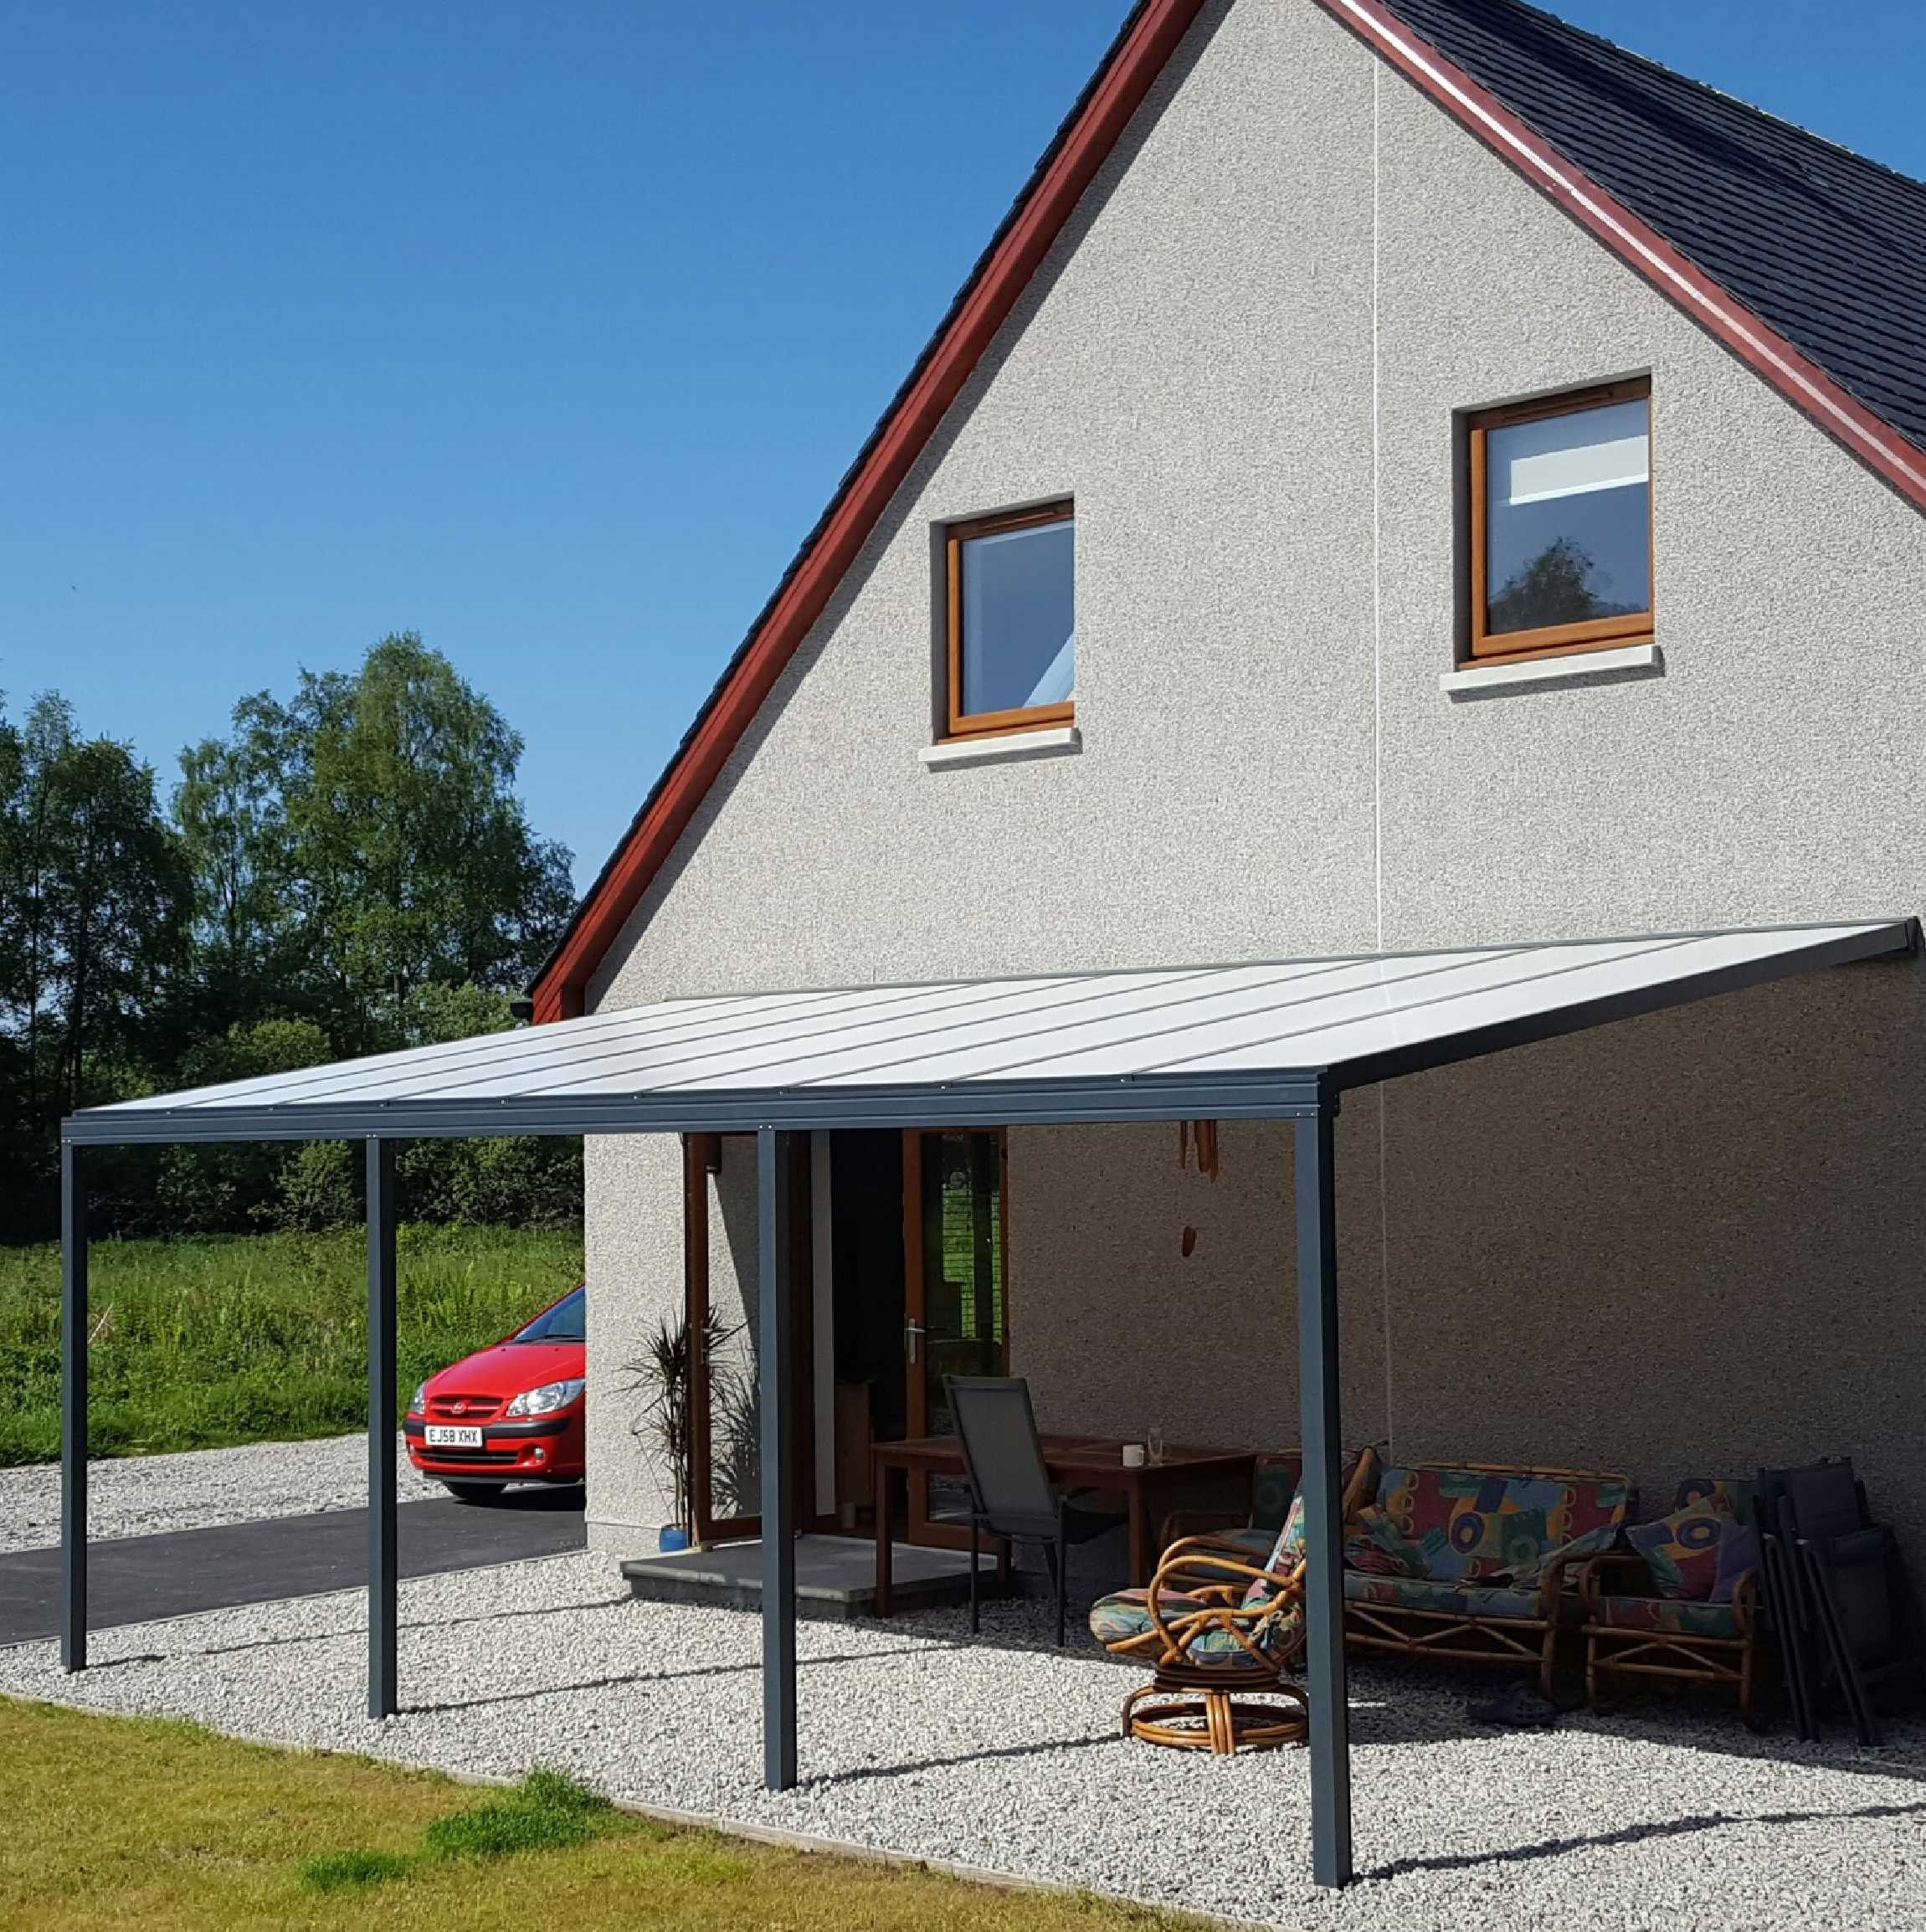 Great selection of Omega Smart Lean-To Canopy, Anthracite Grey, 16mm Polycarbonate Glazing - 11.8m (W) x 4.5m (P), (5) Supporting Posts